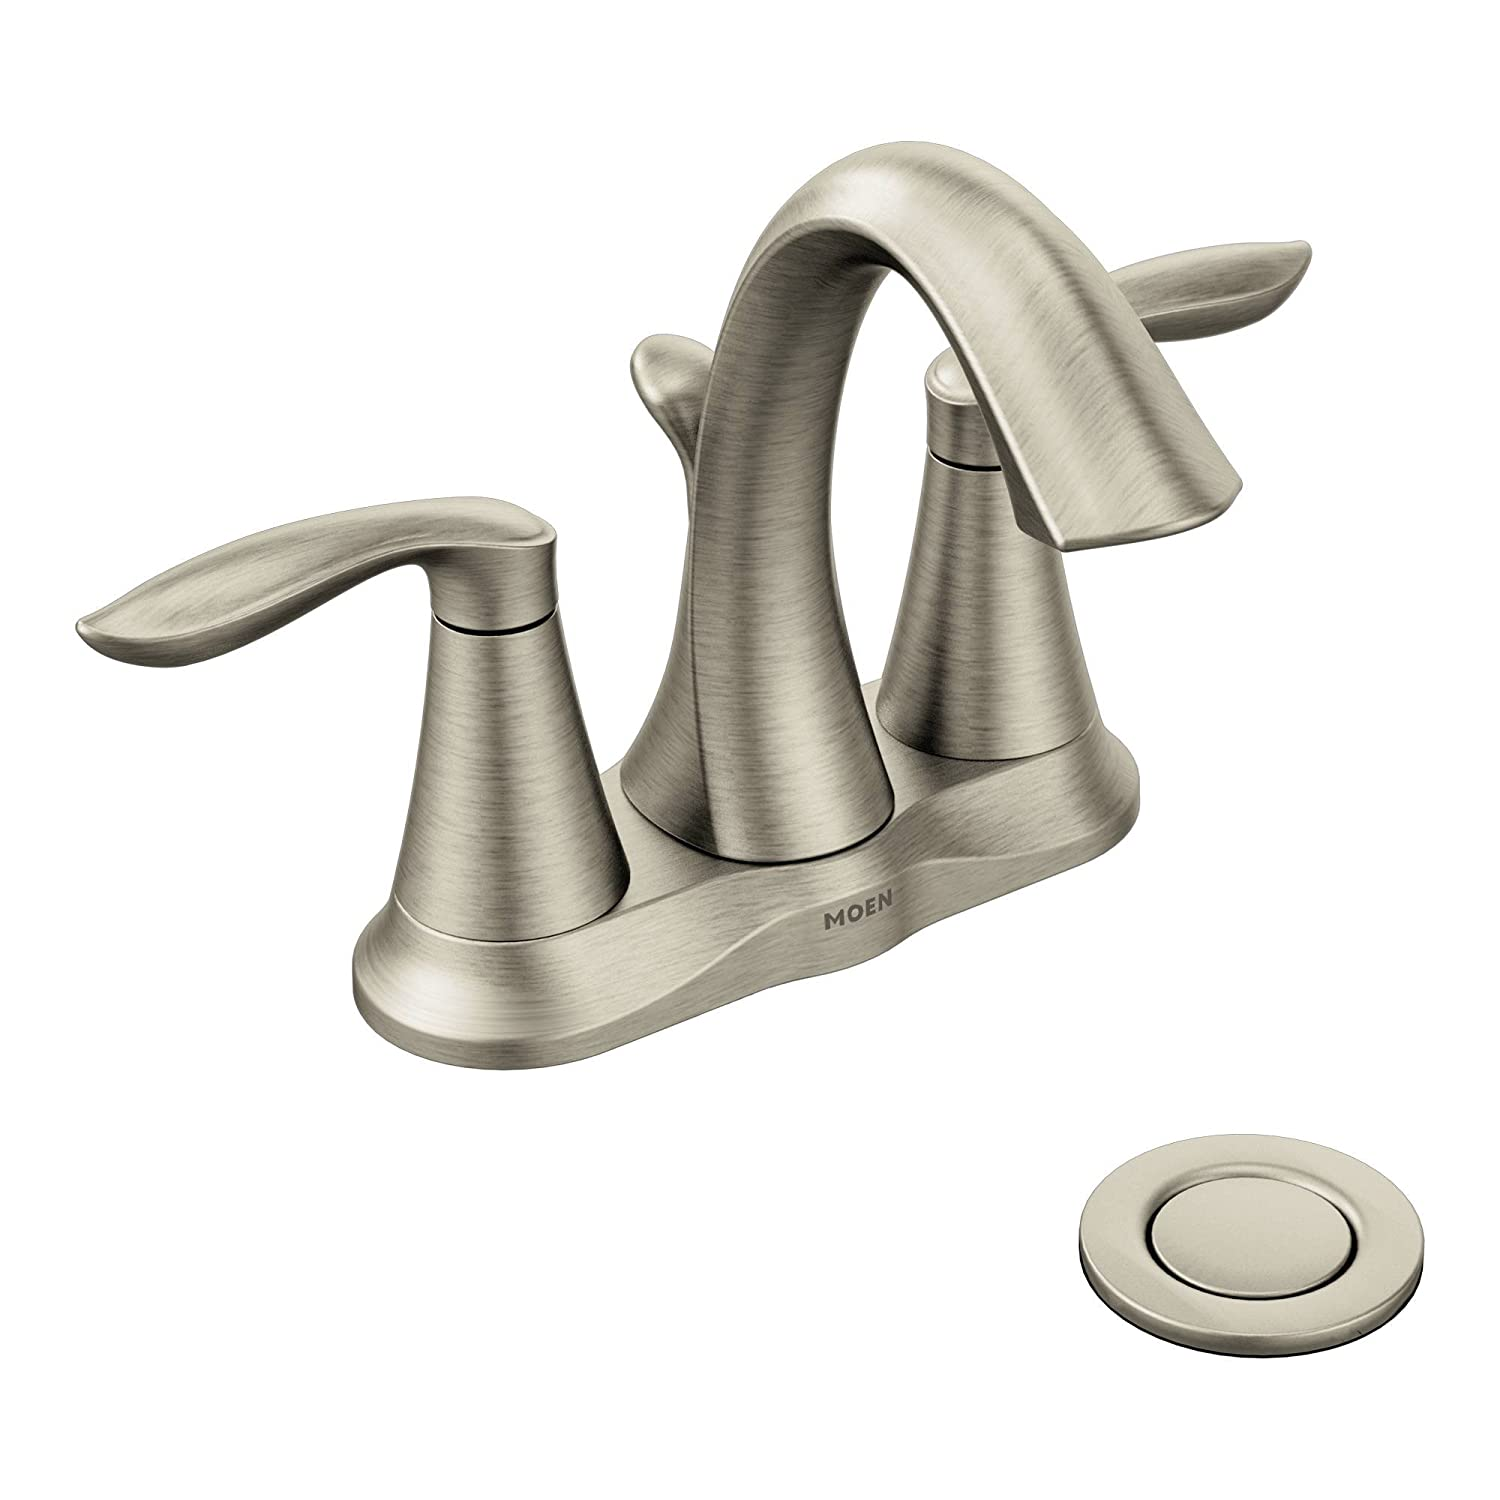 polished pn handles nickel metal faucet bathroom lever monroe with front bridge faucets